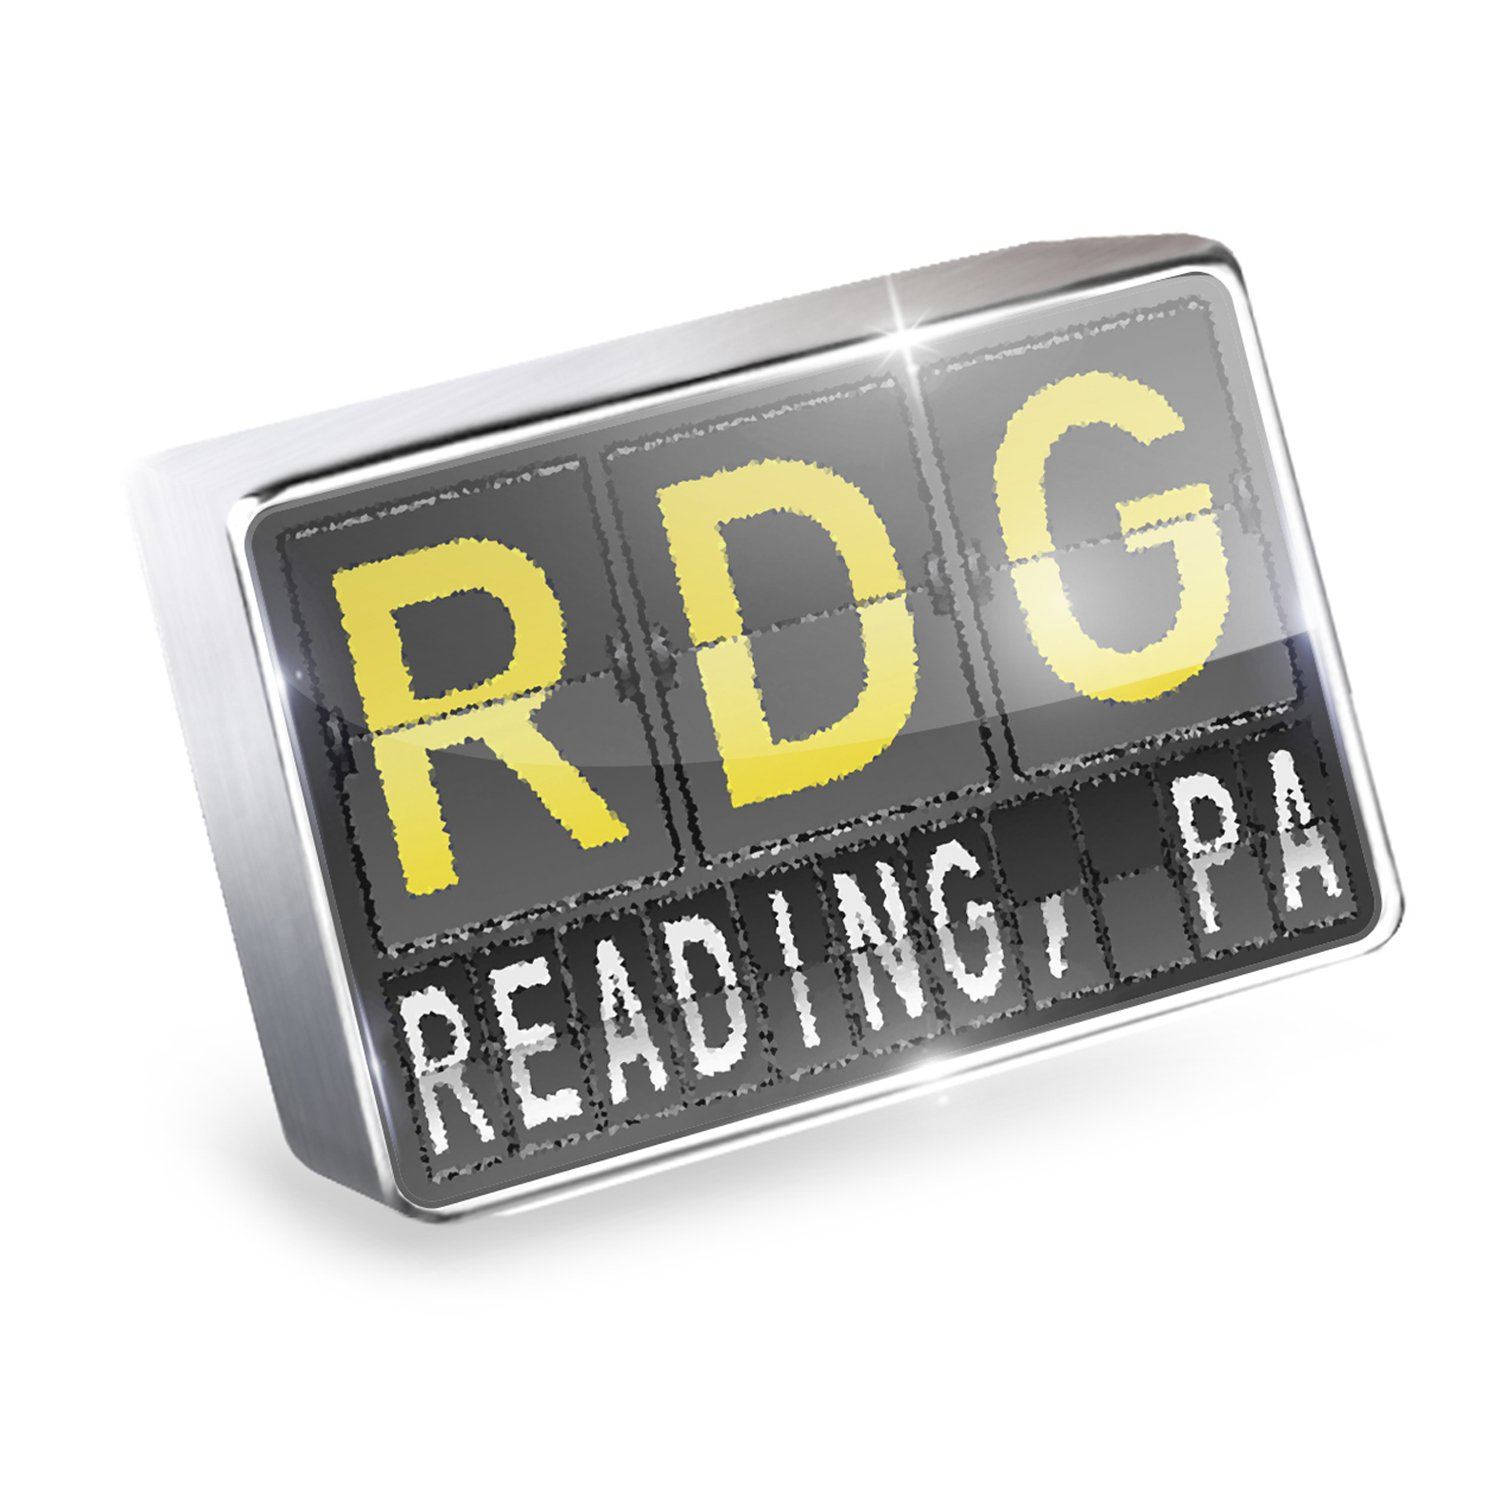 Buy Rdg Now!